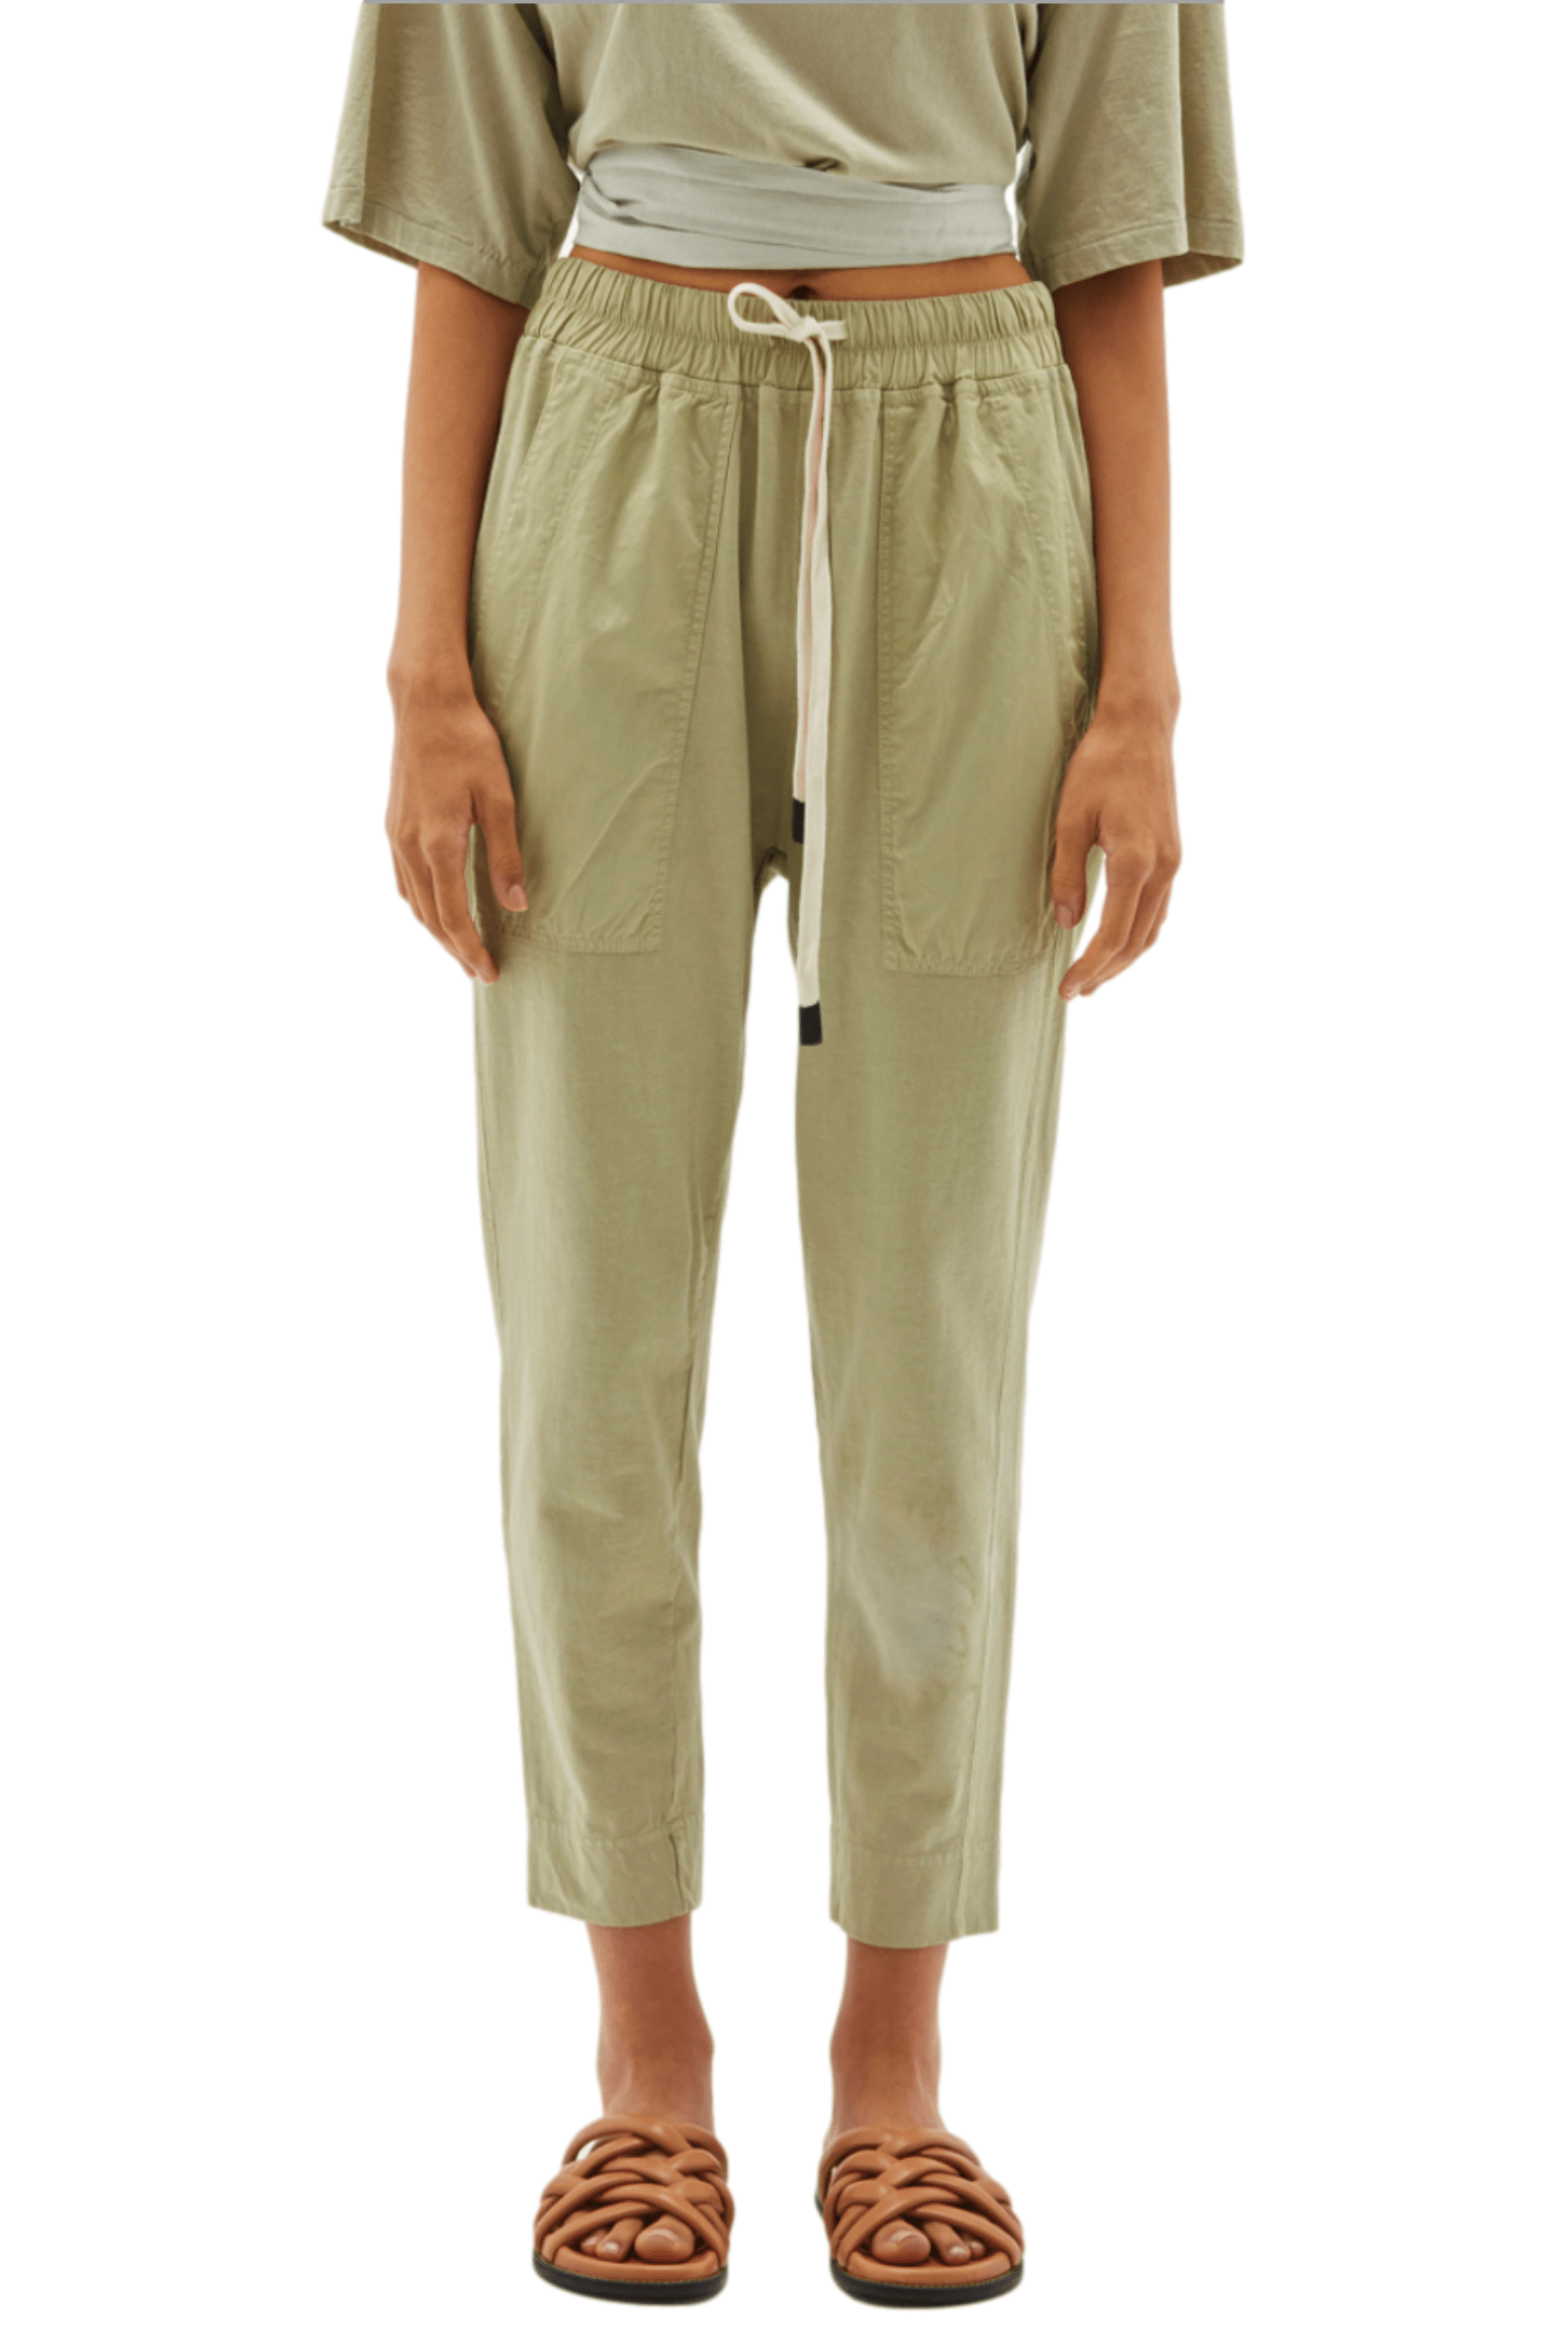 Double Jersey Contrast Tapered Pant / Sedative Sage Womens Bassike